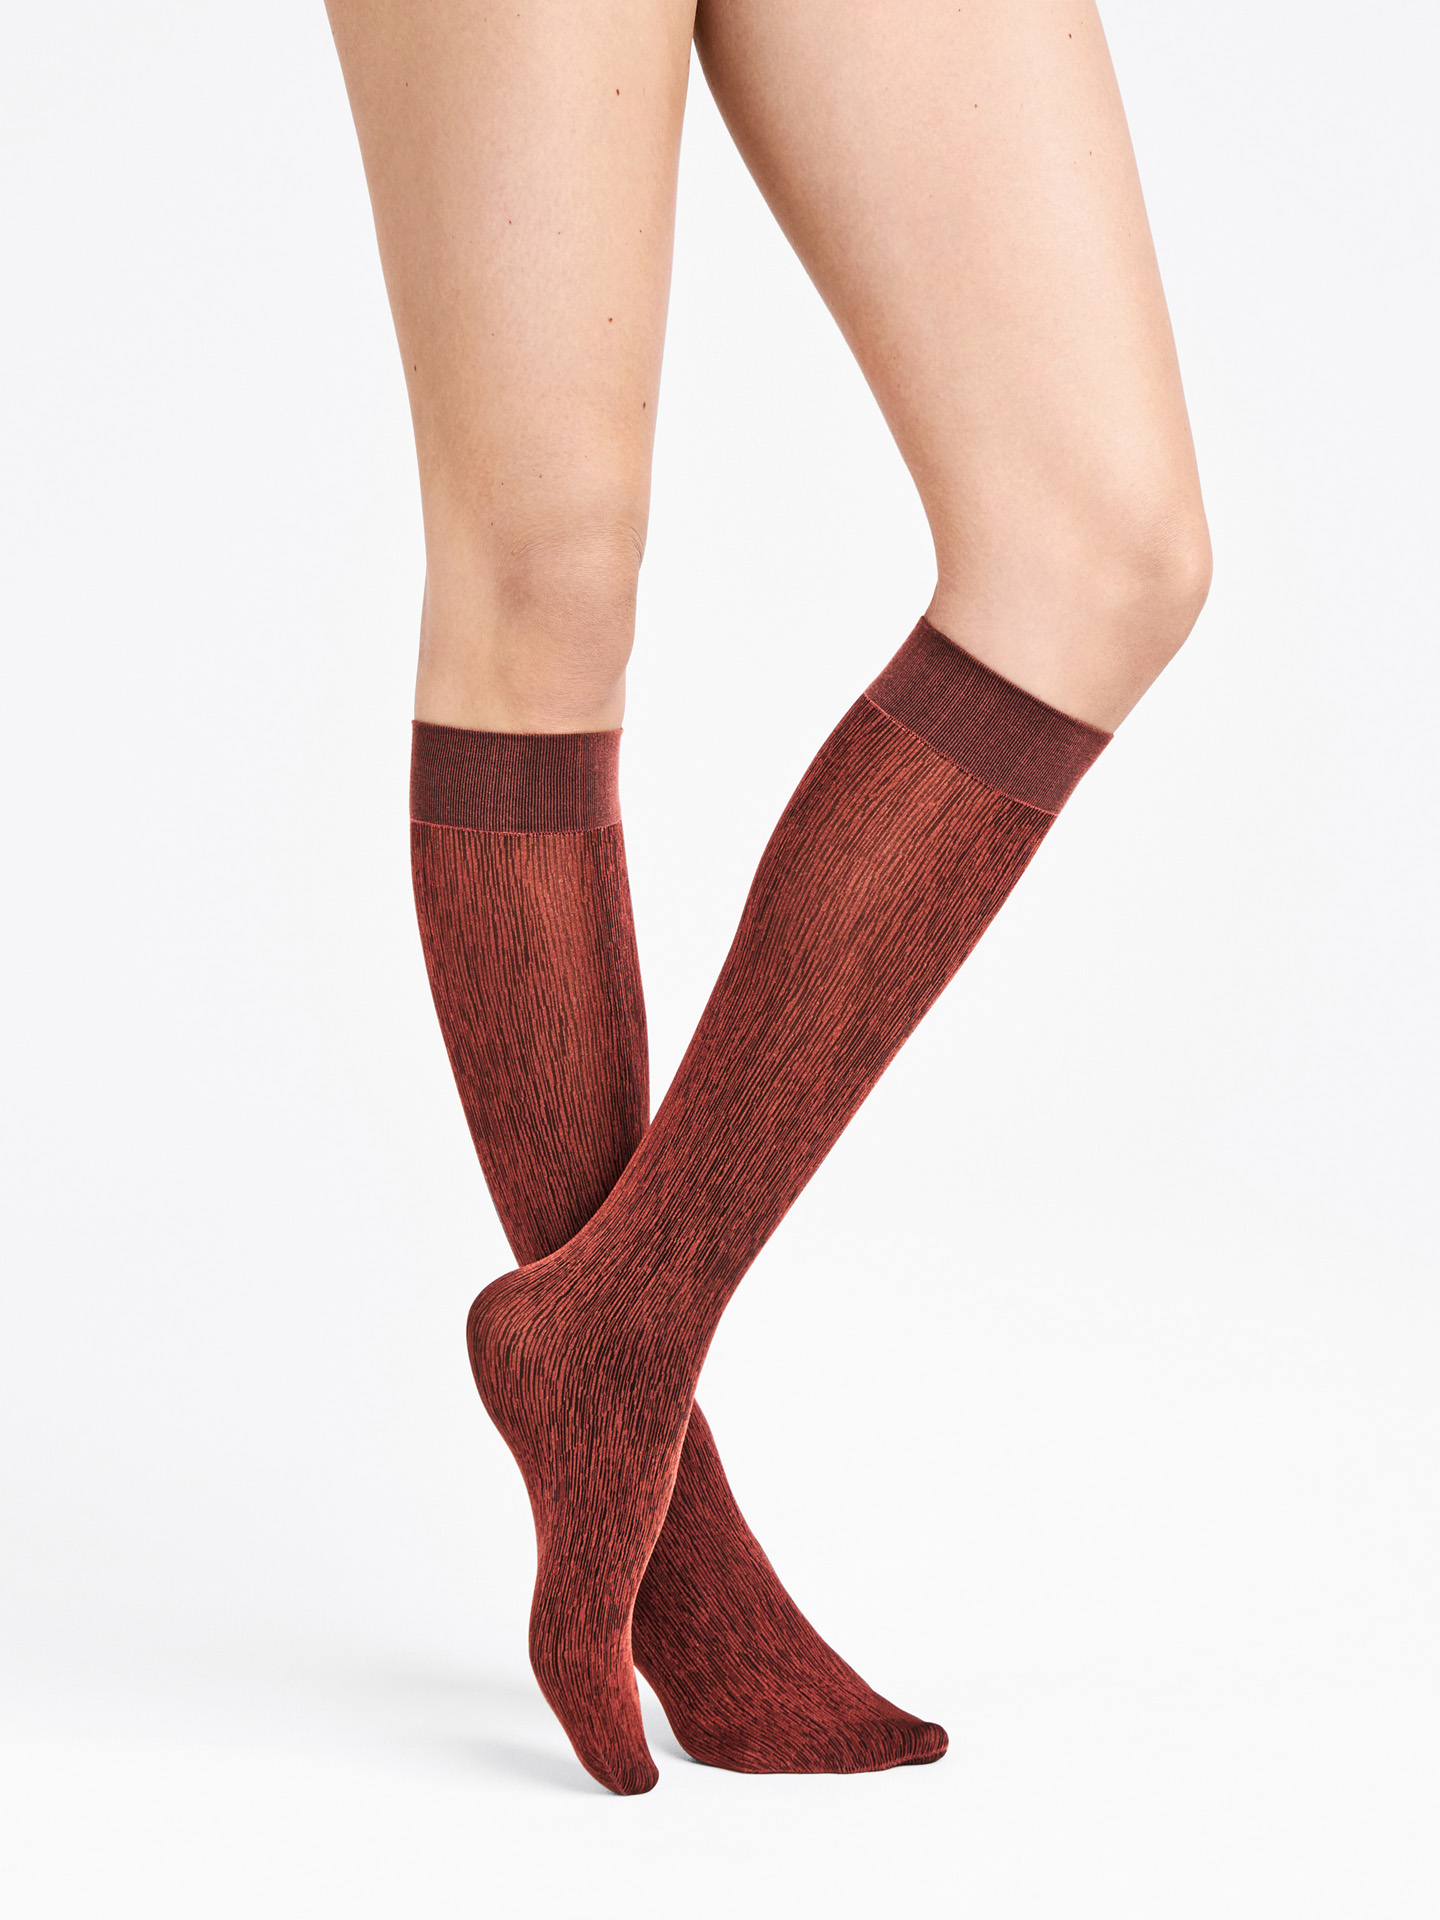 Wolford Apparel & Accessories > Clothing > Calze e Collant Amazonian Poison Knee-Highs